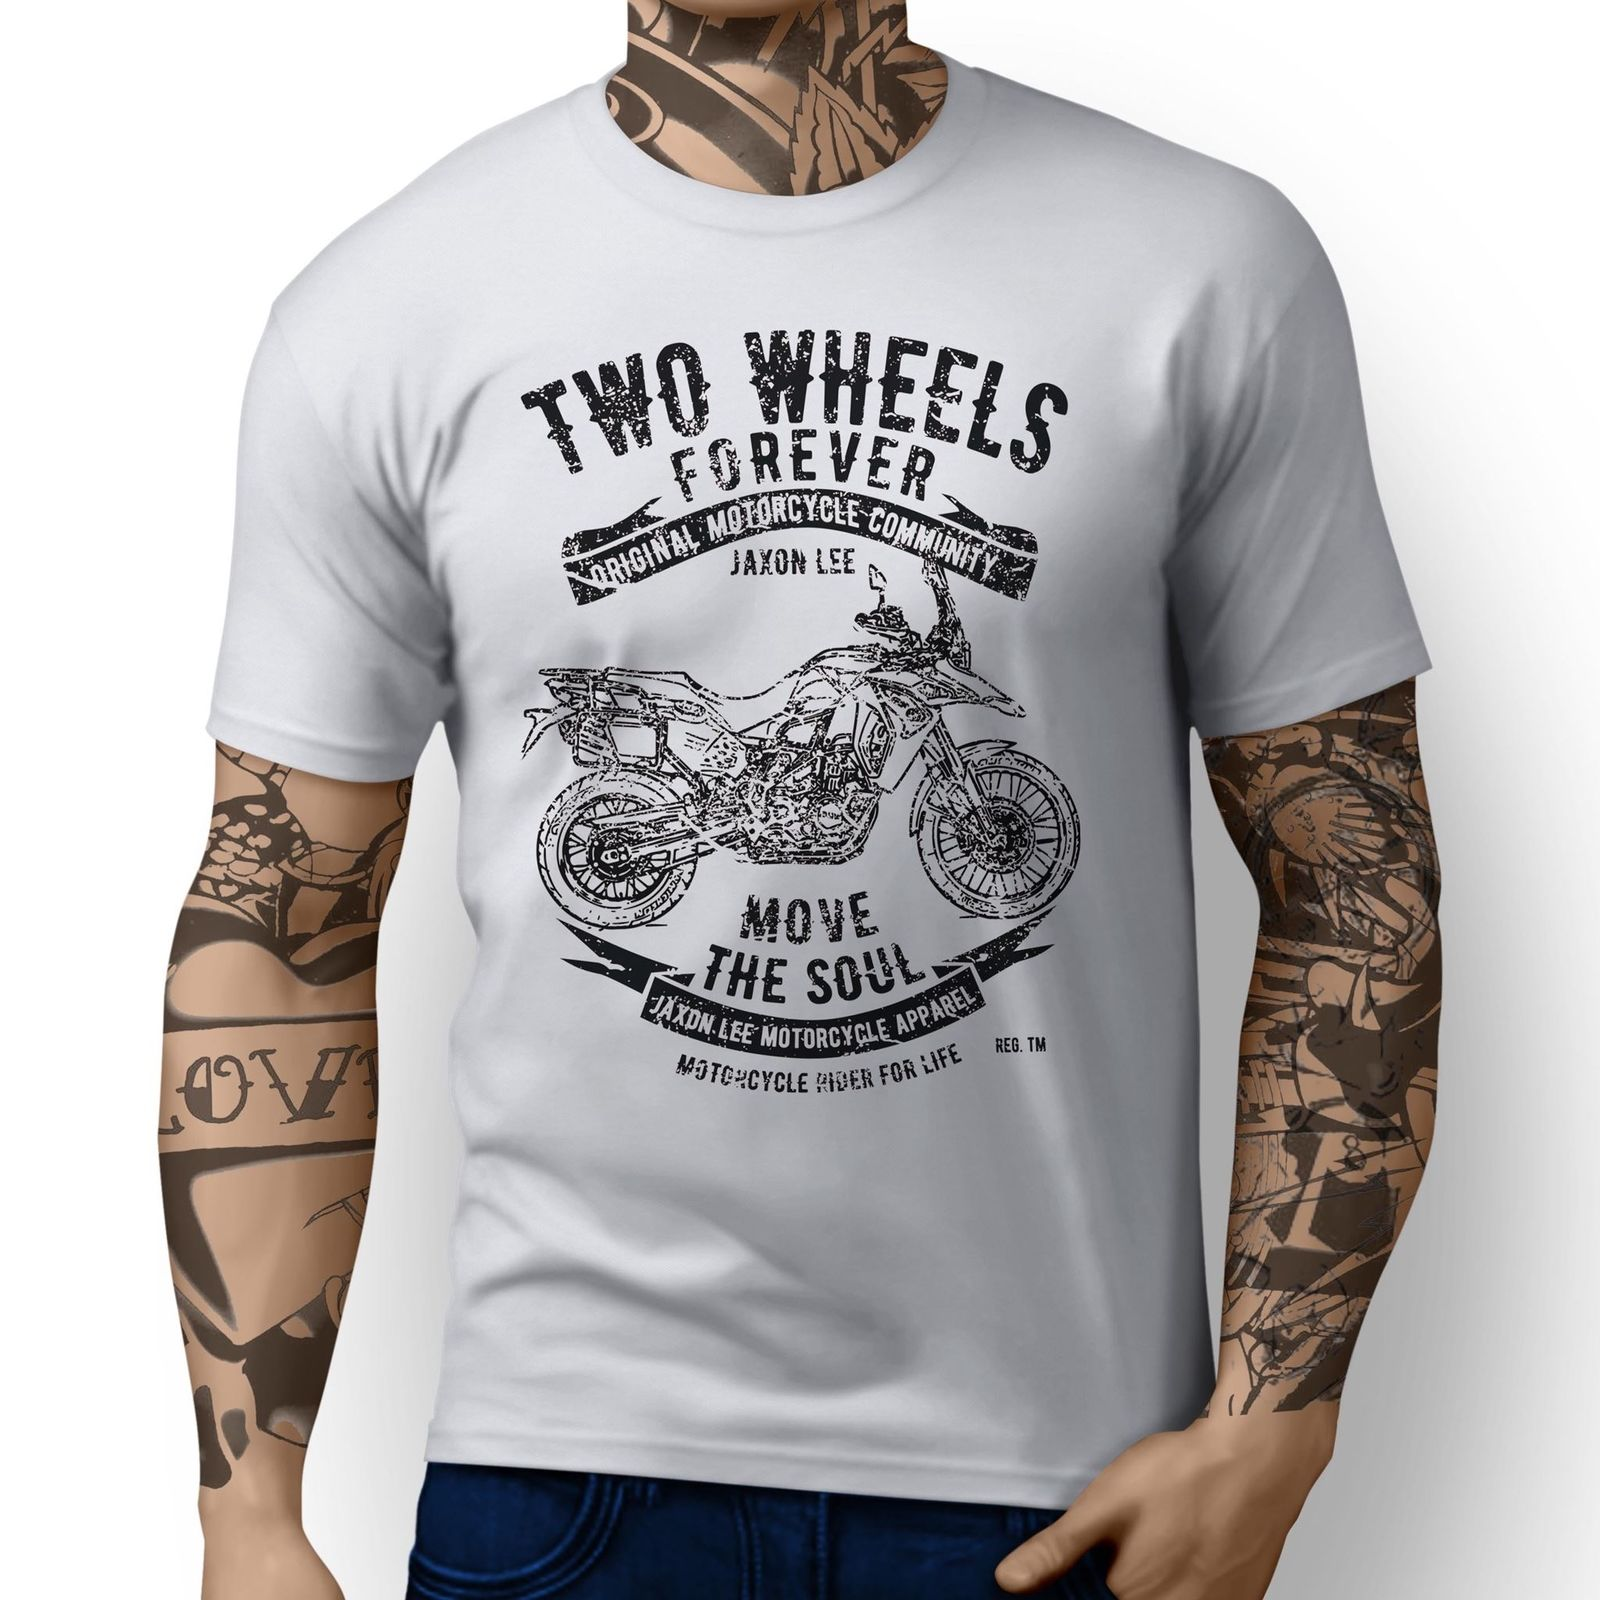 28a77f616473 Aliexpress.com : Buy 2018 New Cool Tee Shirt Germany Adventure F800GS  Adventure Inspired Motorcycle Art Design T shirts from Reliable designer t- shirt ...